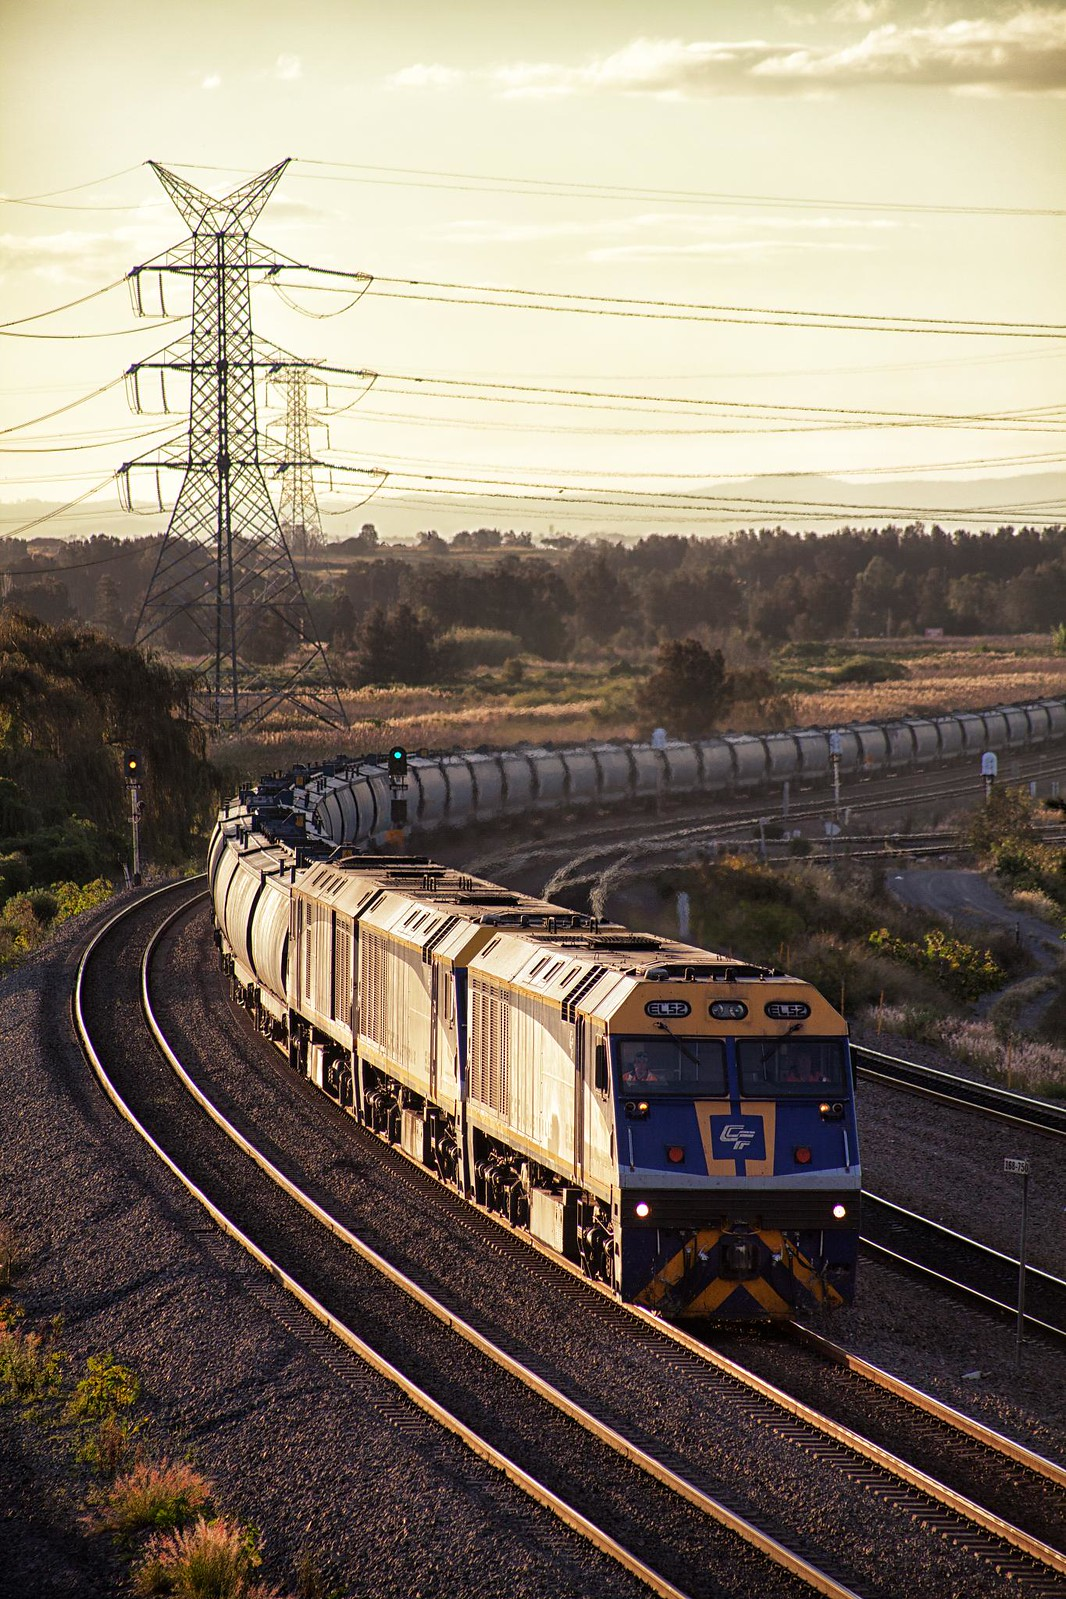 EL52 Approaching Warabrook by Trent